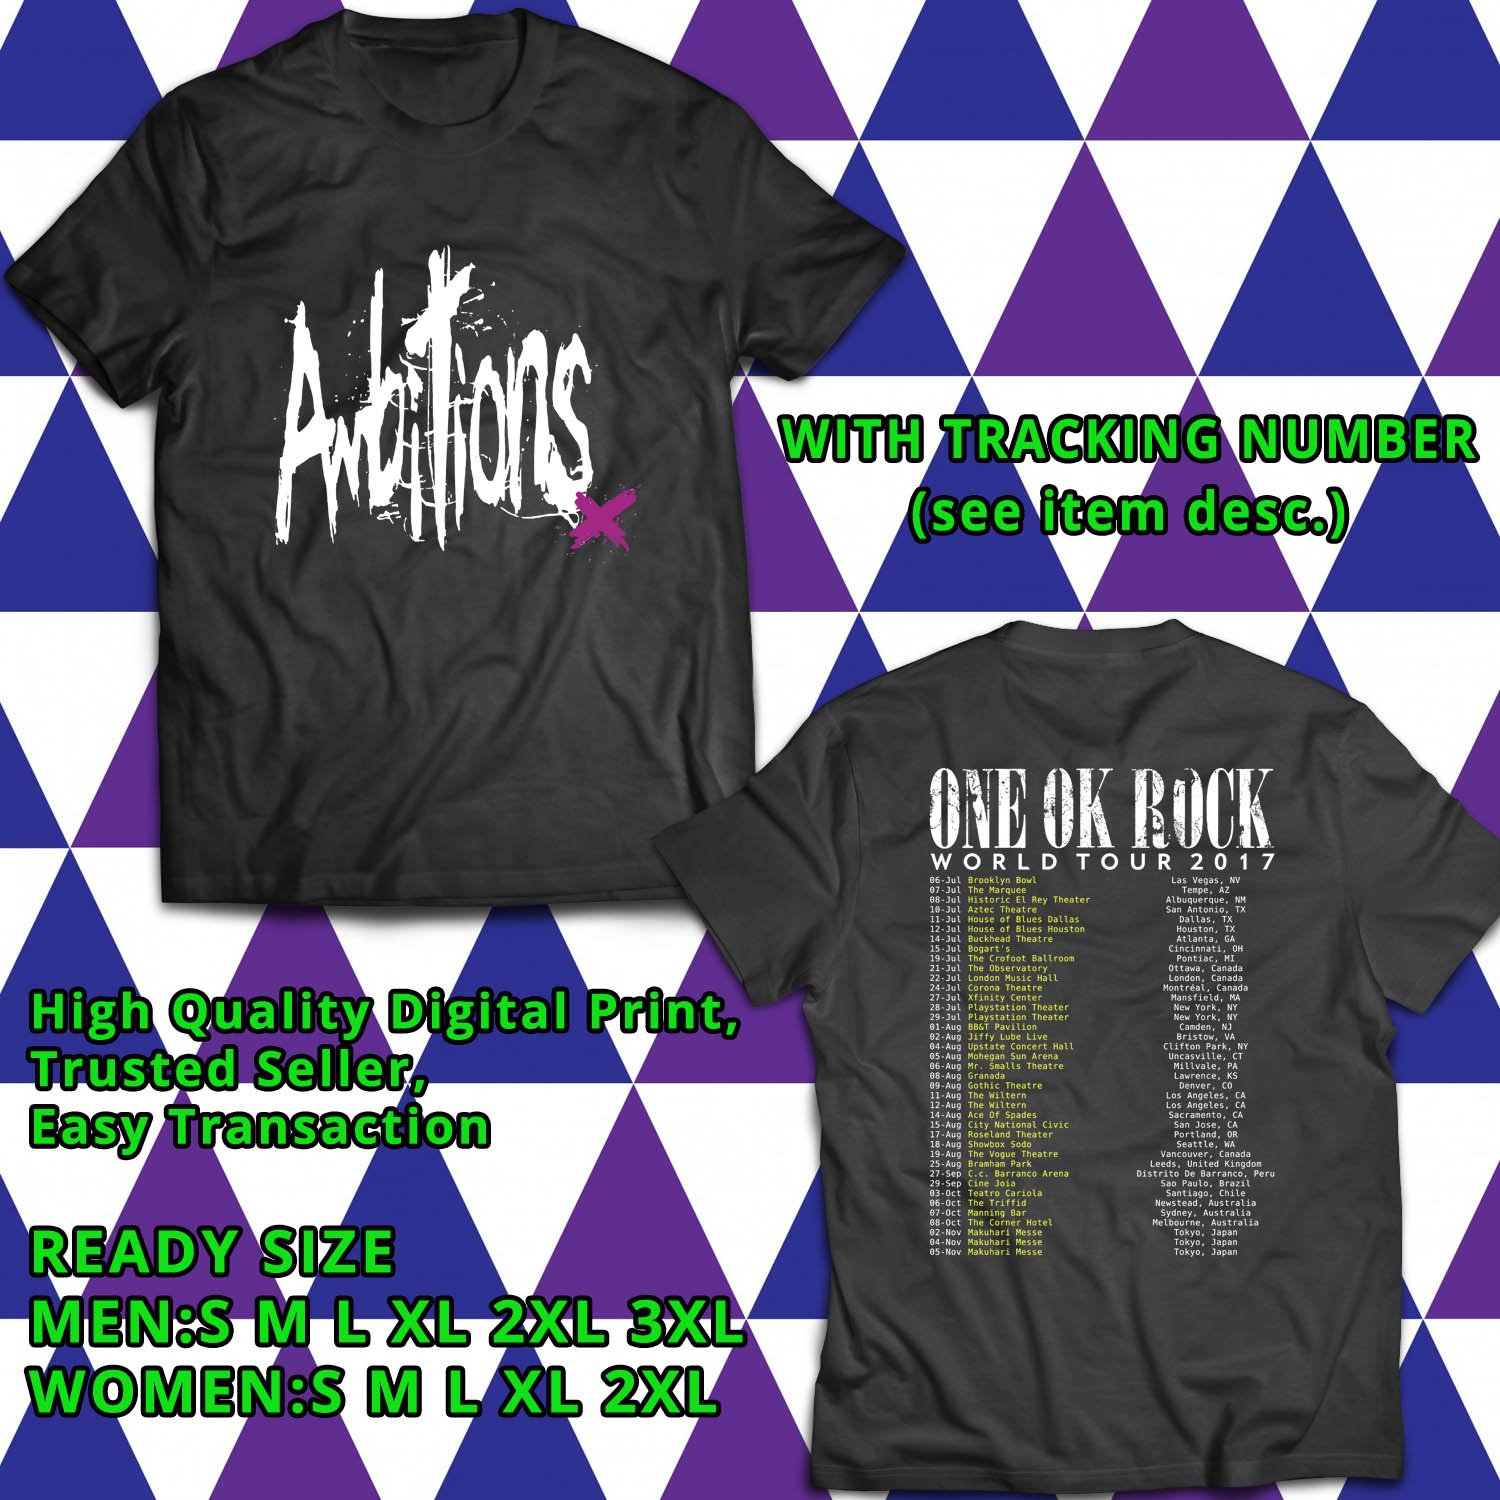 HITS ONE OK ROCK AMBITONS X TOUR 2017 BLACK TEE'S 2SIDE MAN WOMEN ASTR 276